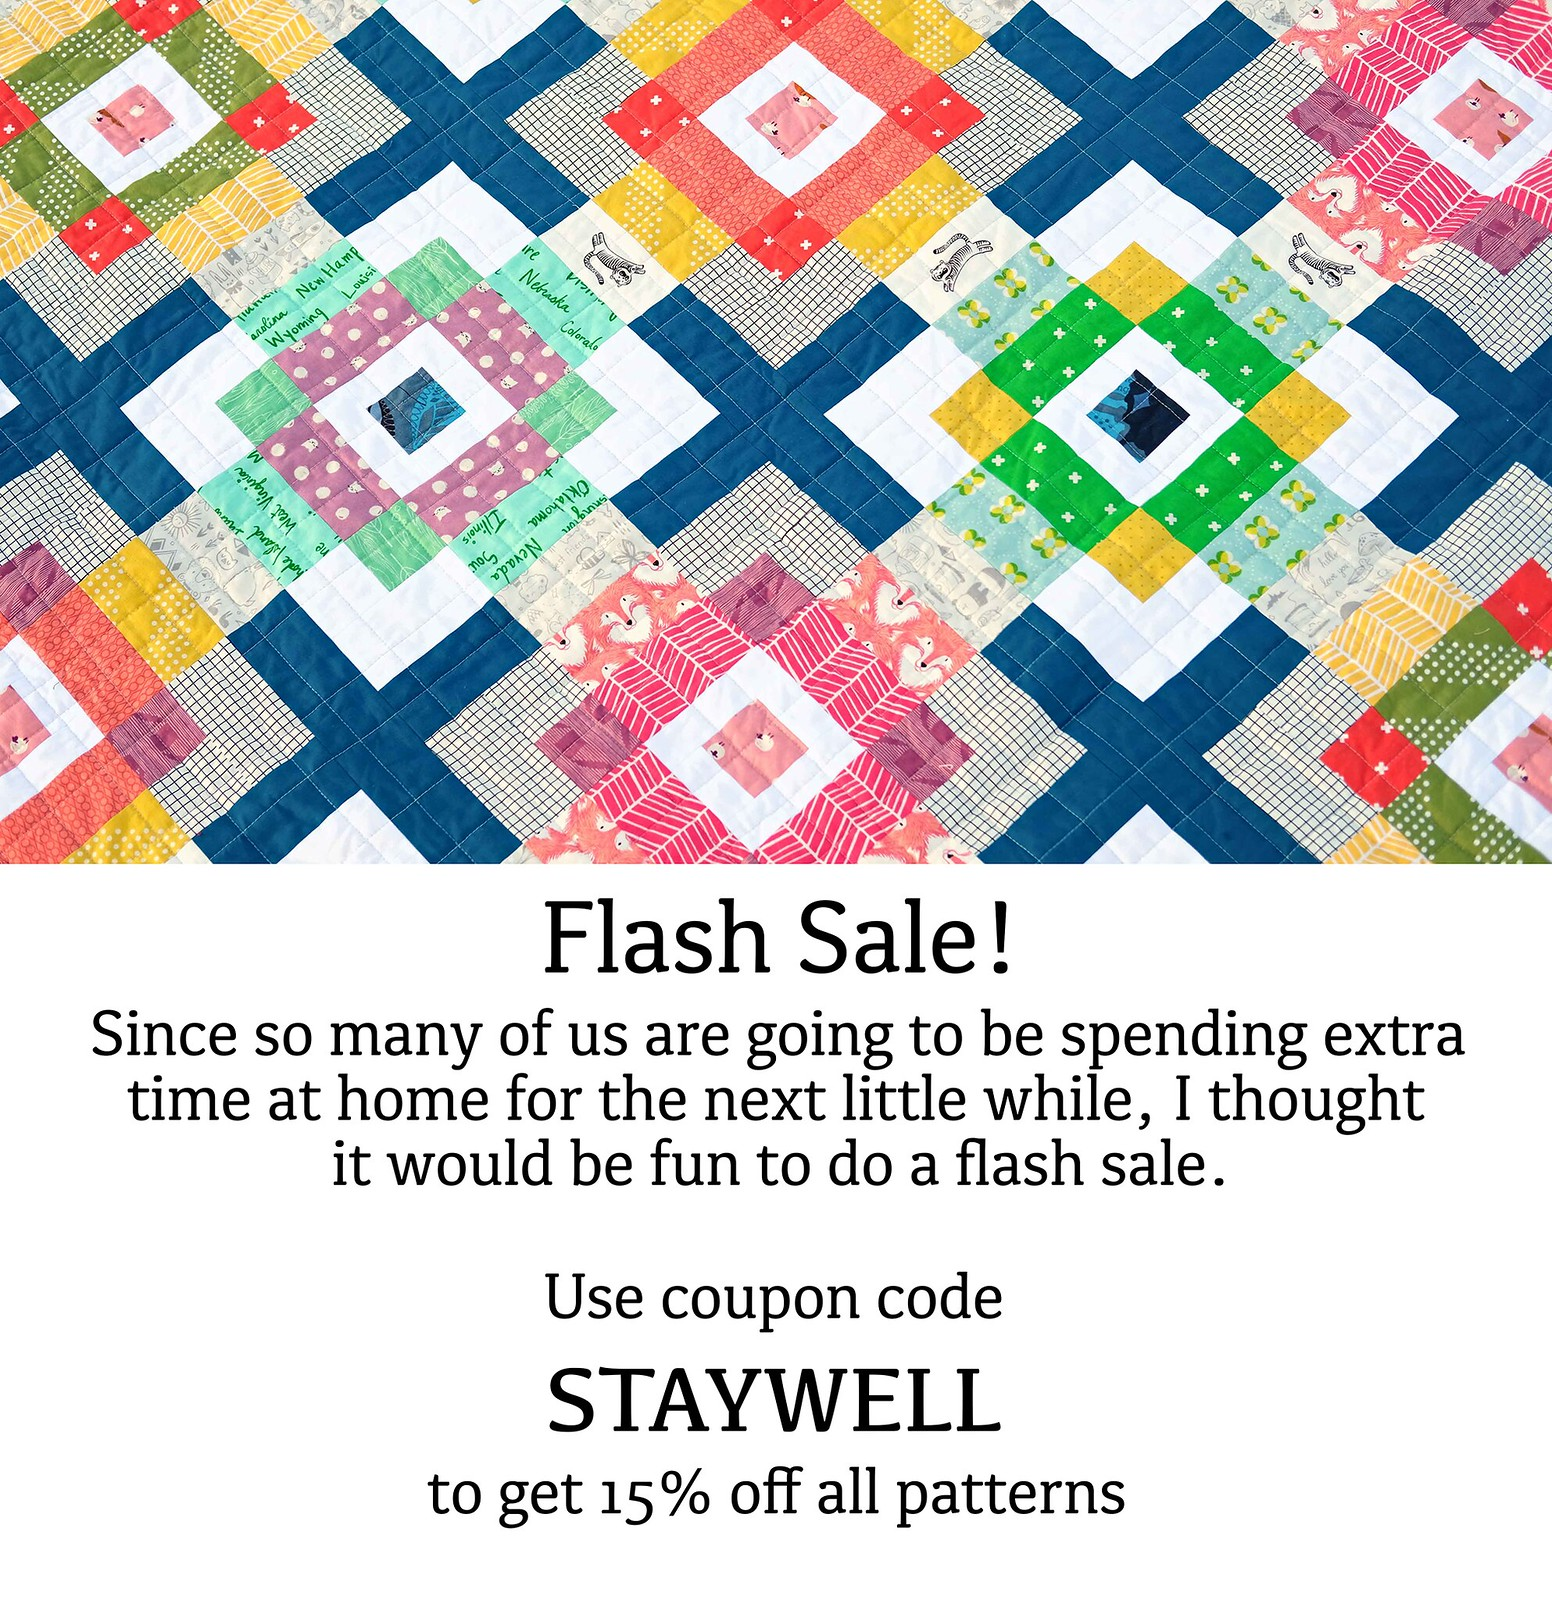 Kitchen Table Quilting Flash Sale